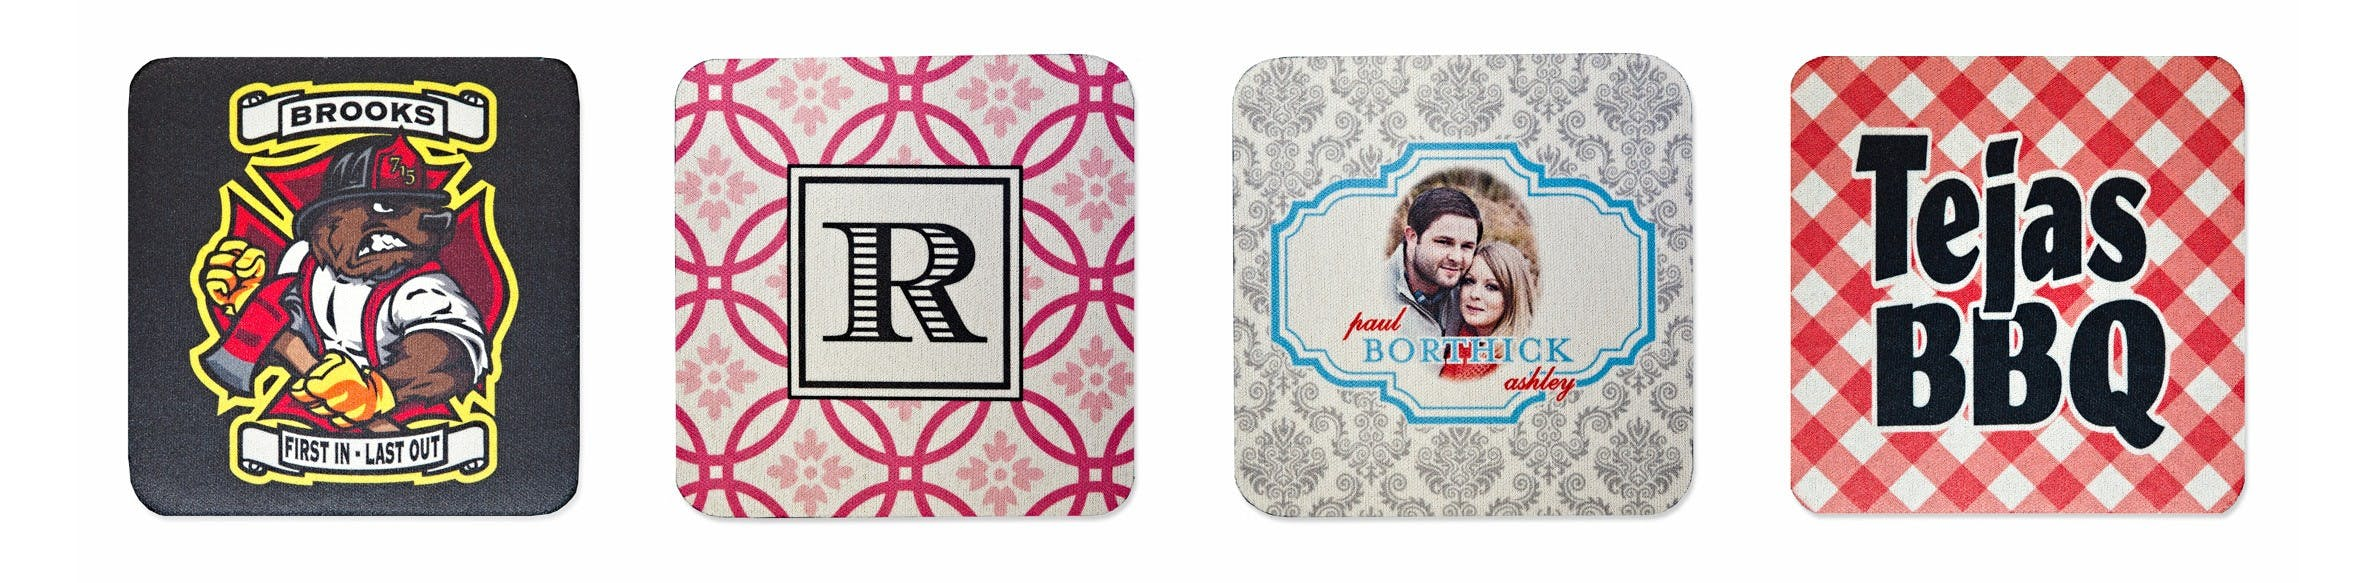 Neoprene Coasters - Pulpboard and Neoprene Drink Coasters - sold by Cup of Arms